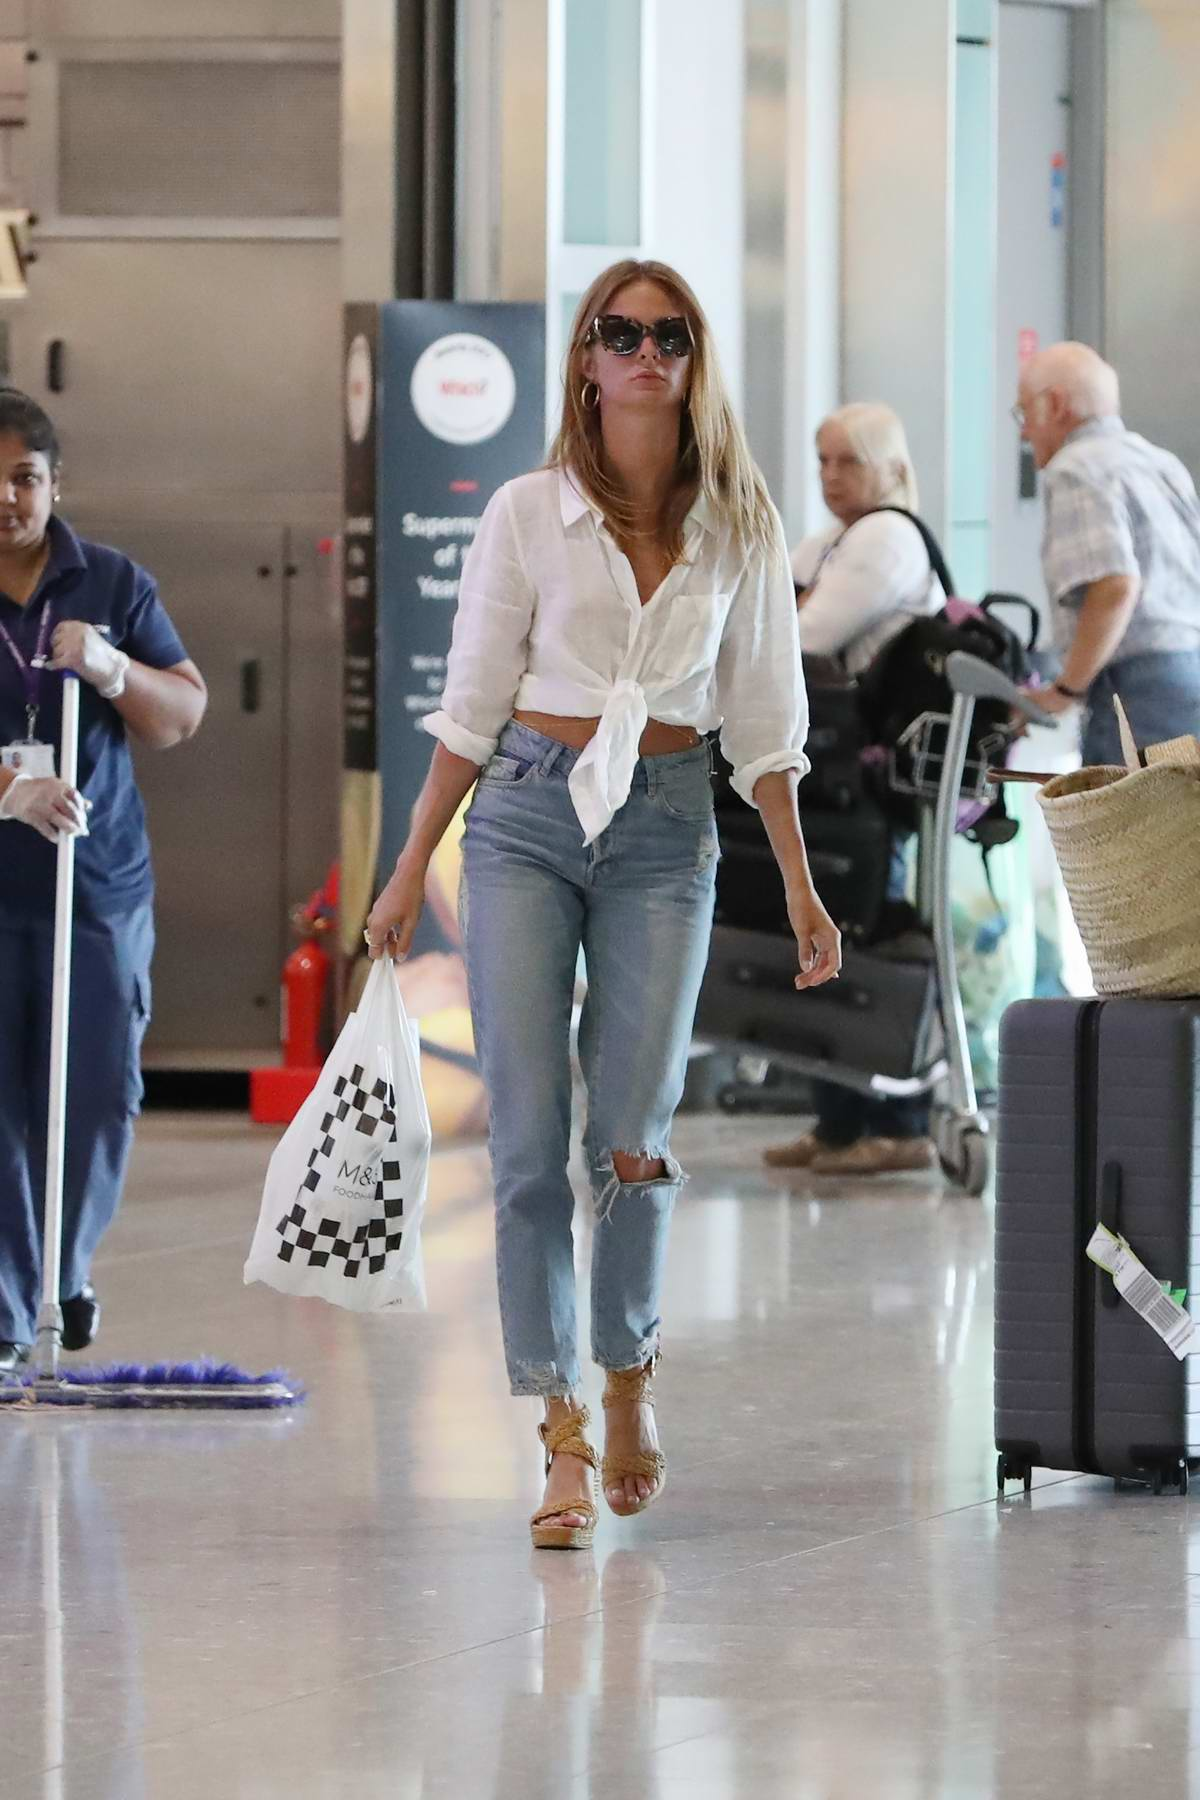 Millie Mackintosh arriving at Heathrow Airport in London